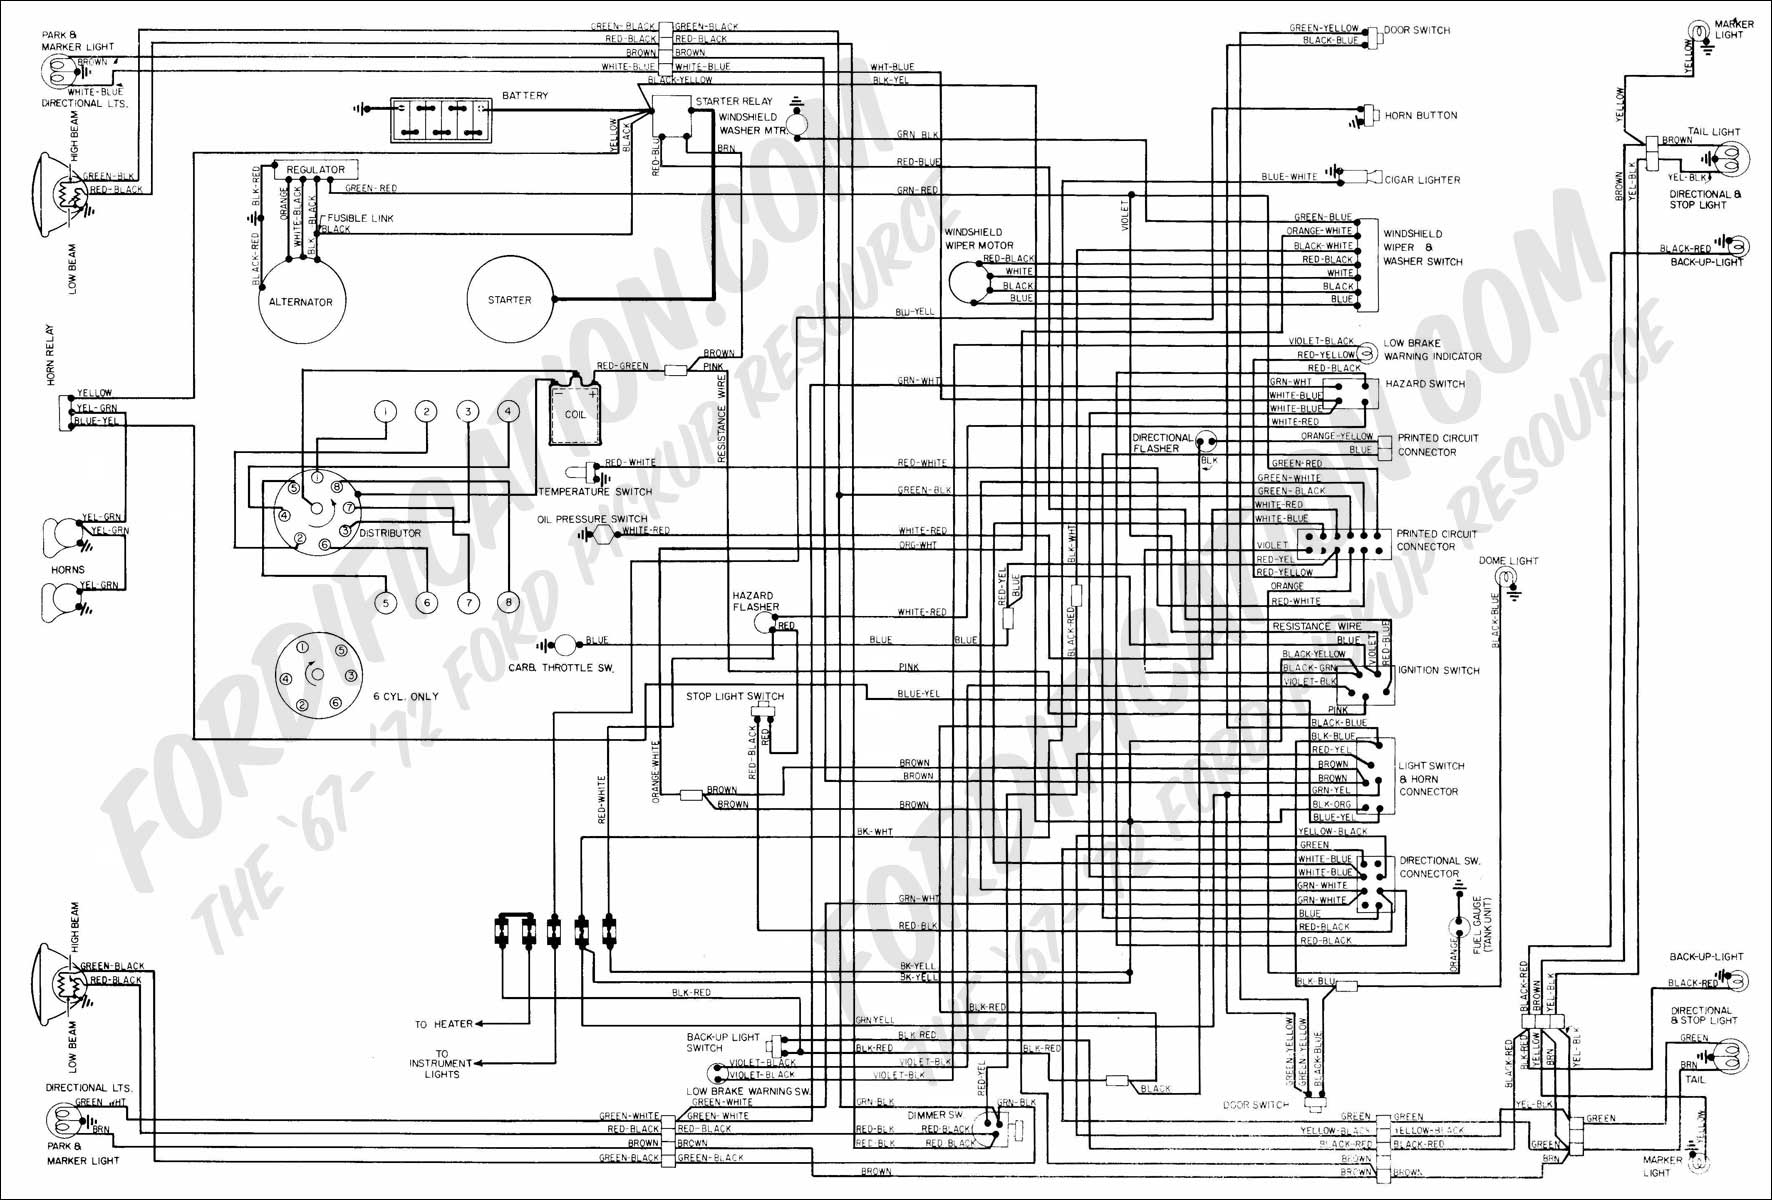 jeep wrangler radio wiring diagram with 1301216 71 F100 Electrical Help on Ford Ranger Fuse Box Diagram F4f407207bee621c moreover 15878 2002 Dodge Ram 1500 Dash Lights together with Discussion T50205 ds552562 furthermore 1984 Gmc C1500 Wiring Diagram additionally 2nahk Need Diagram Fuse Box 1999 Cherokee Sport.